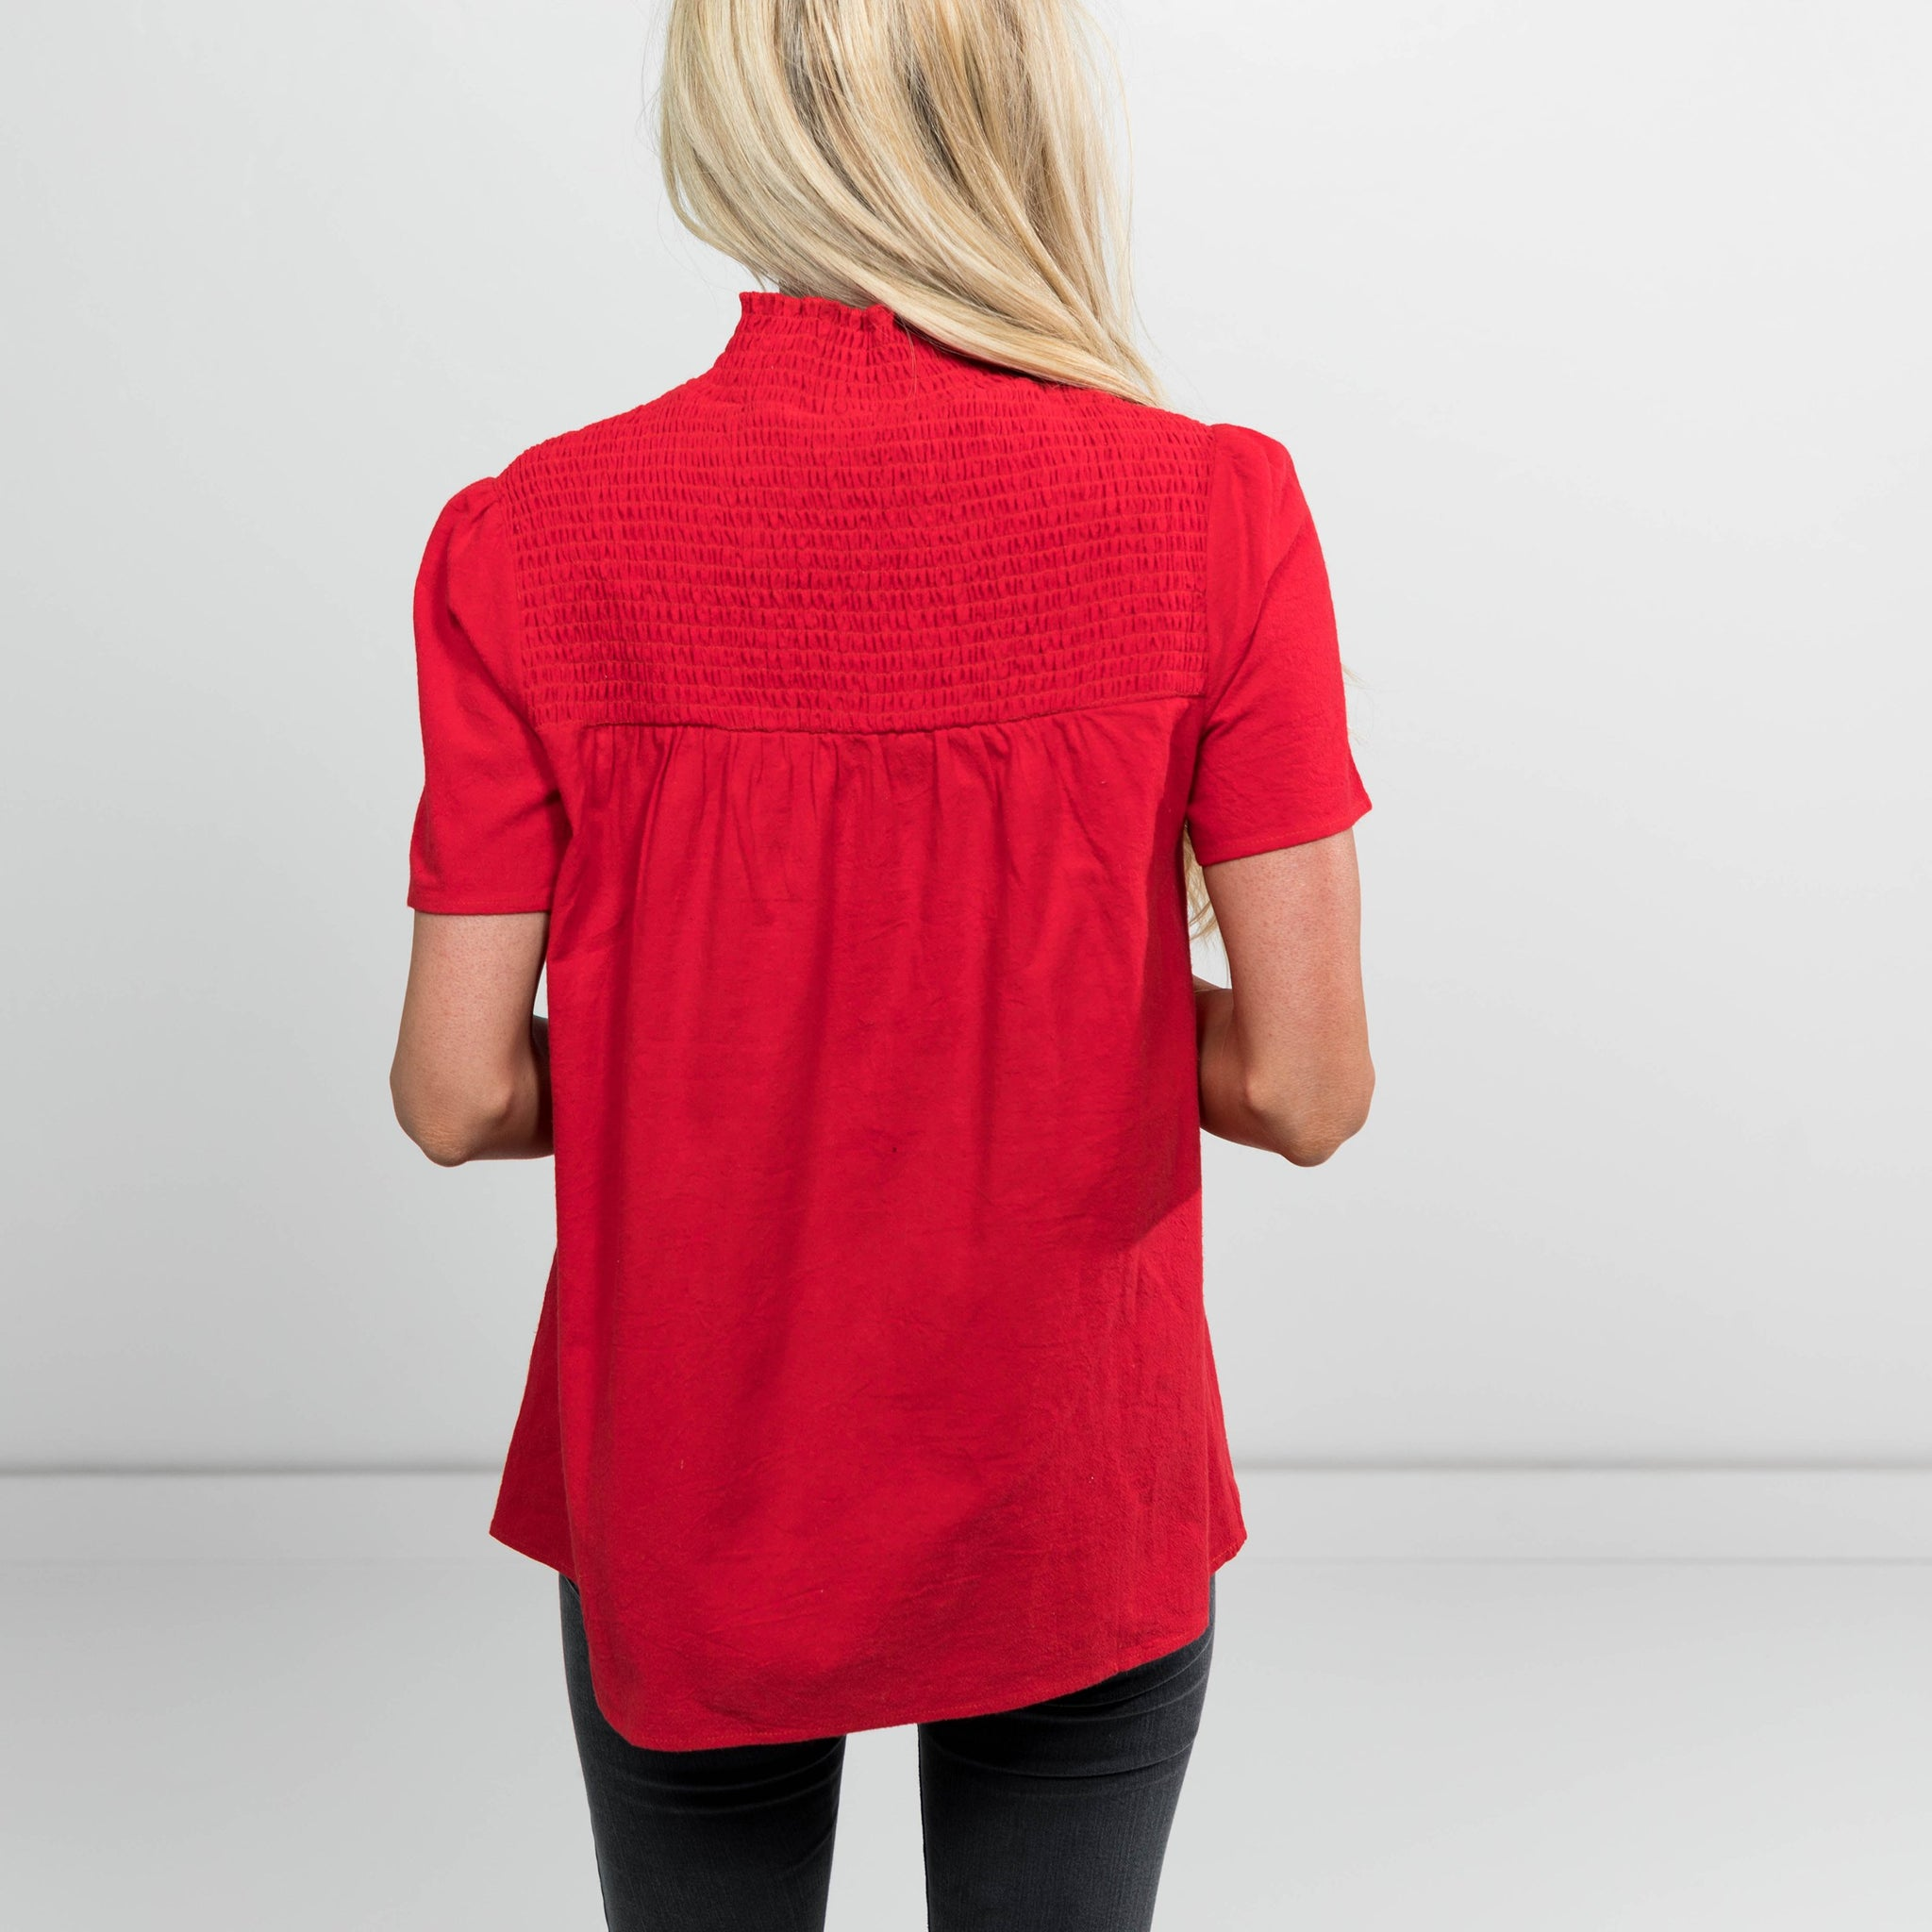 Jennings High Neck Top in Red